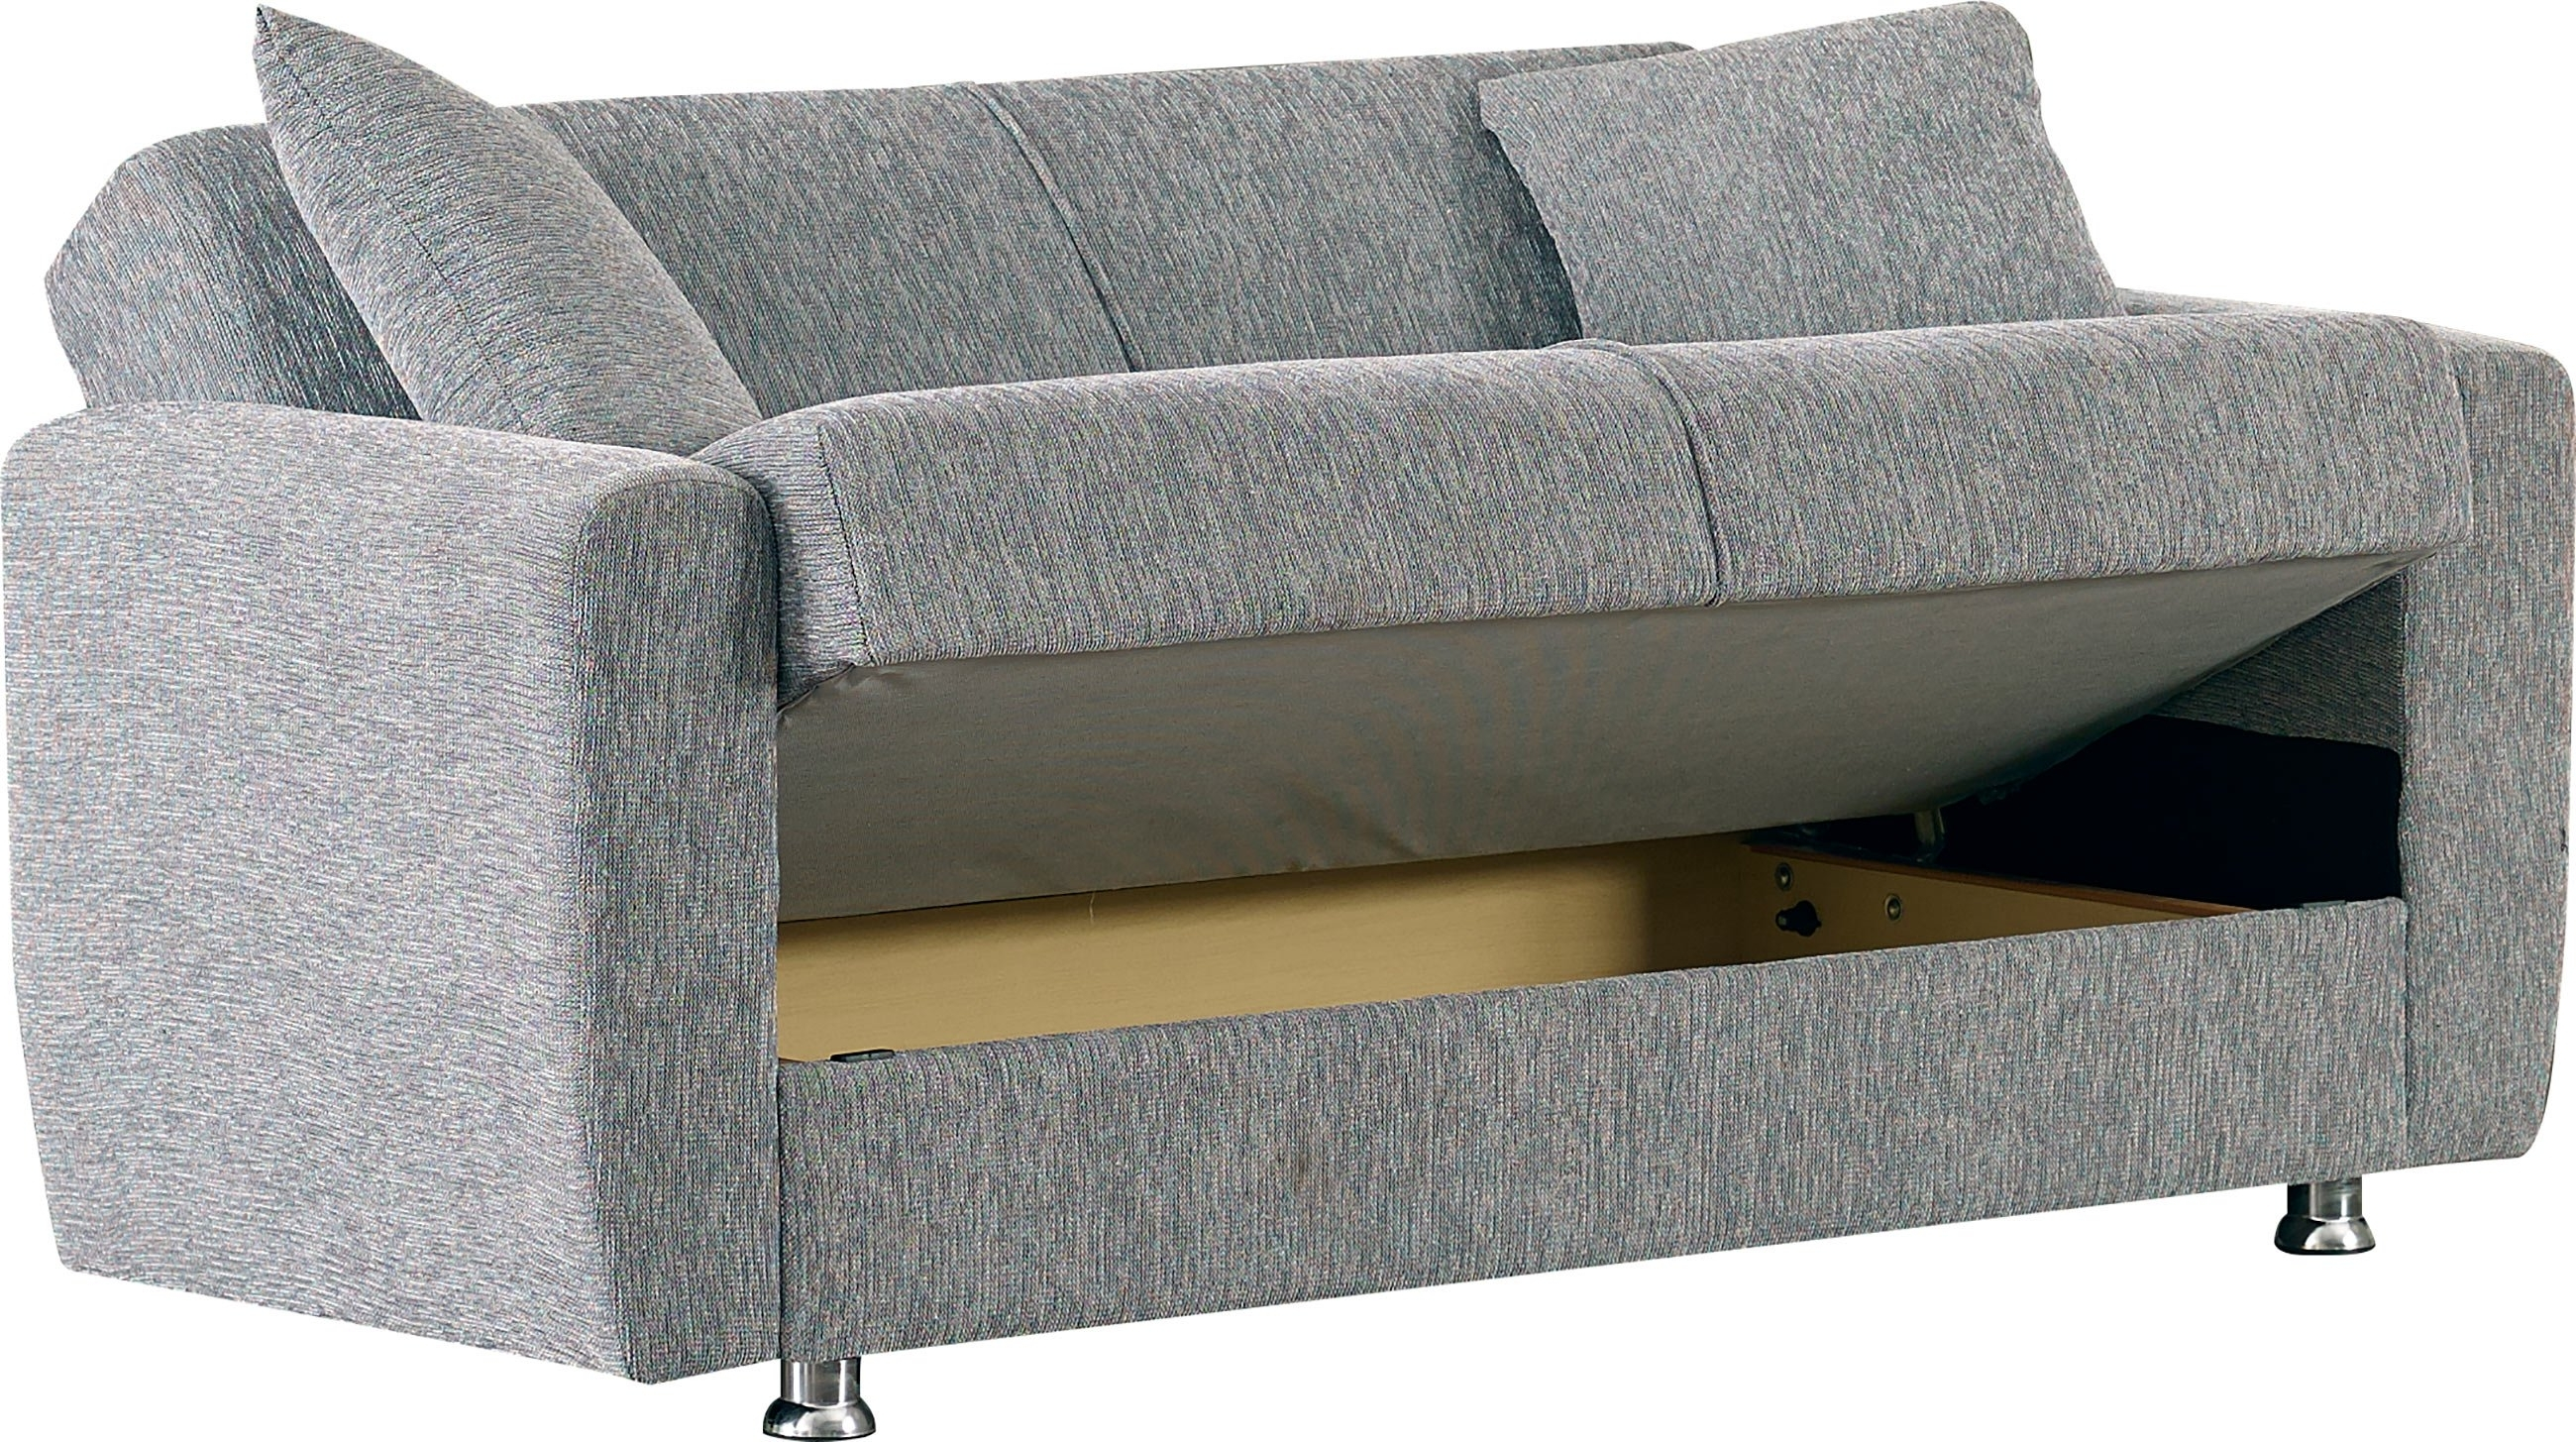 Niagara Sectional Sofas Regarding Famous Niagara Gray Fabric Loveseatempire Furniture Usa (View 7 of 20)